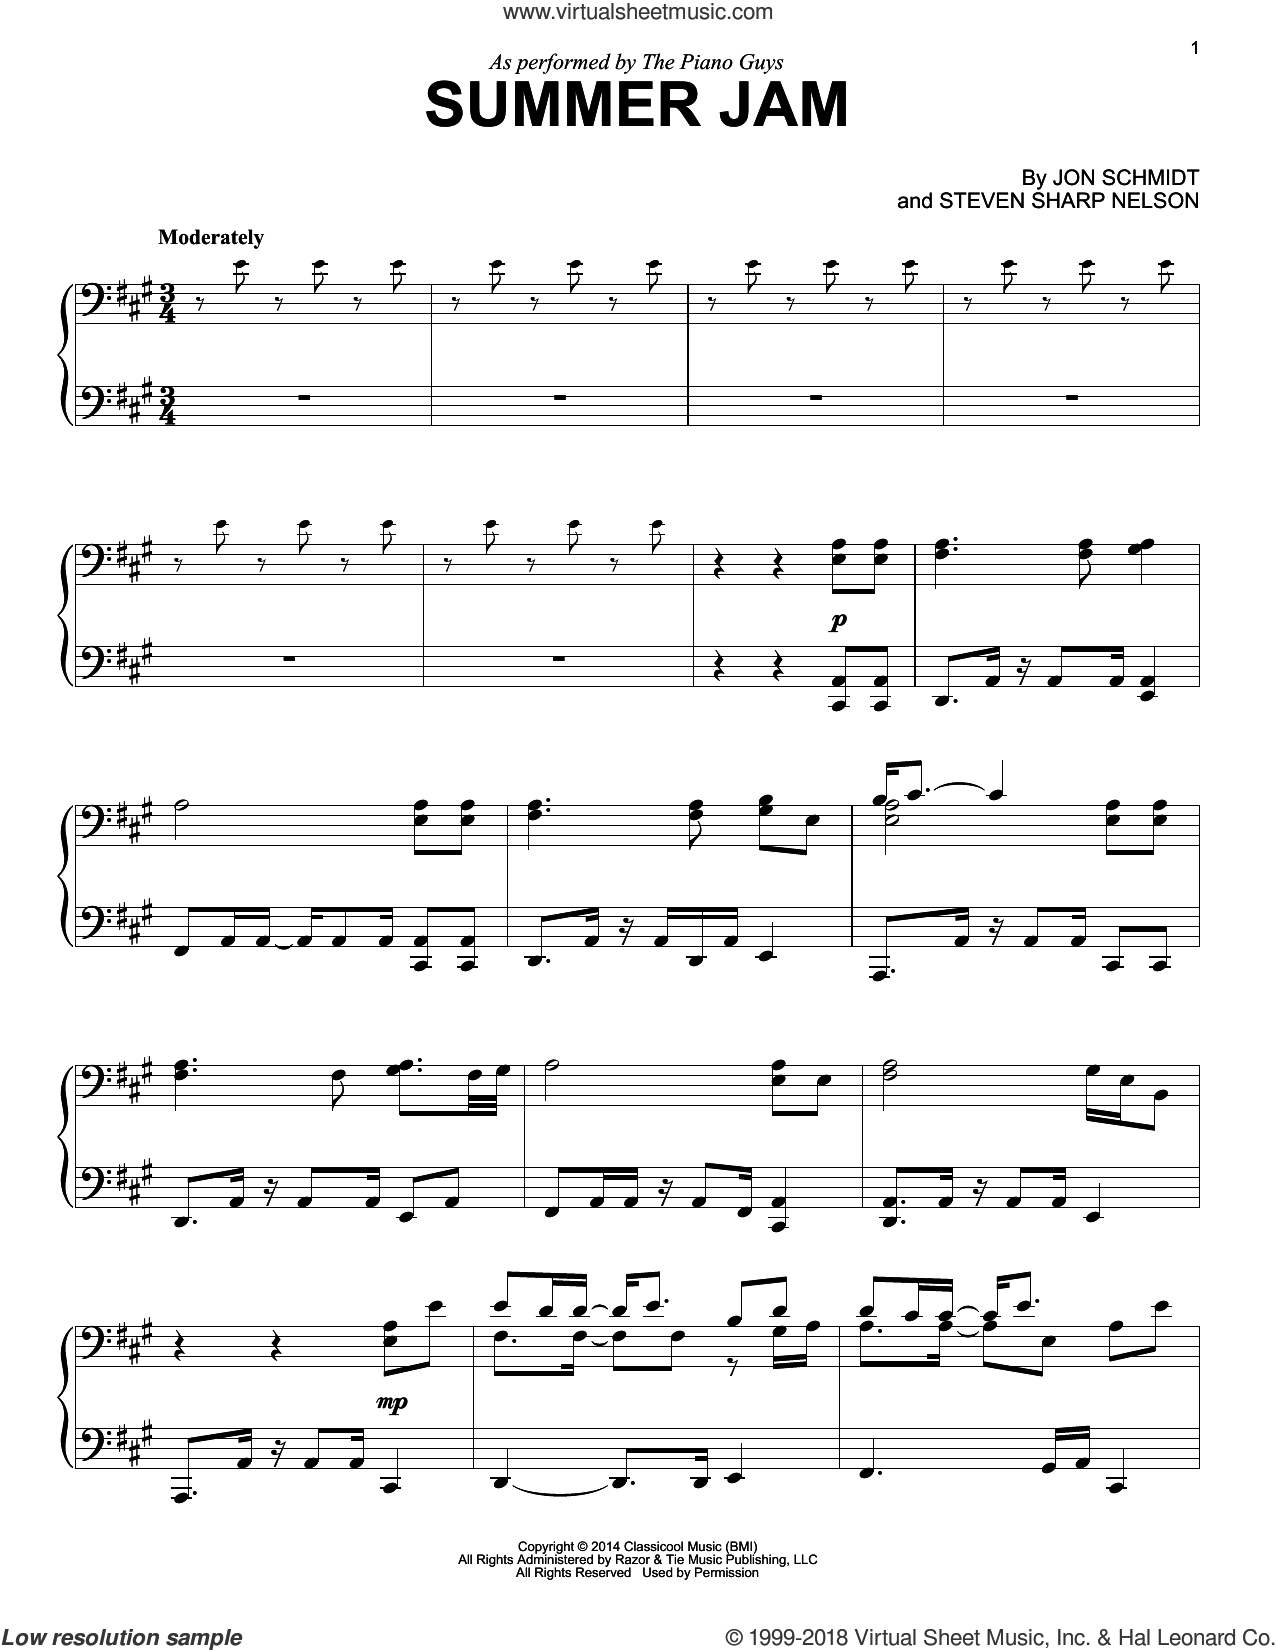 Summer Jam sheet music for piano solo by The Piano Guys, Jon Schmidt and Steven Sharp Nelson, intermediate skill level